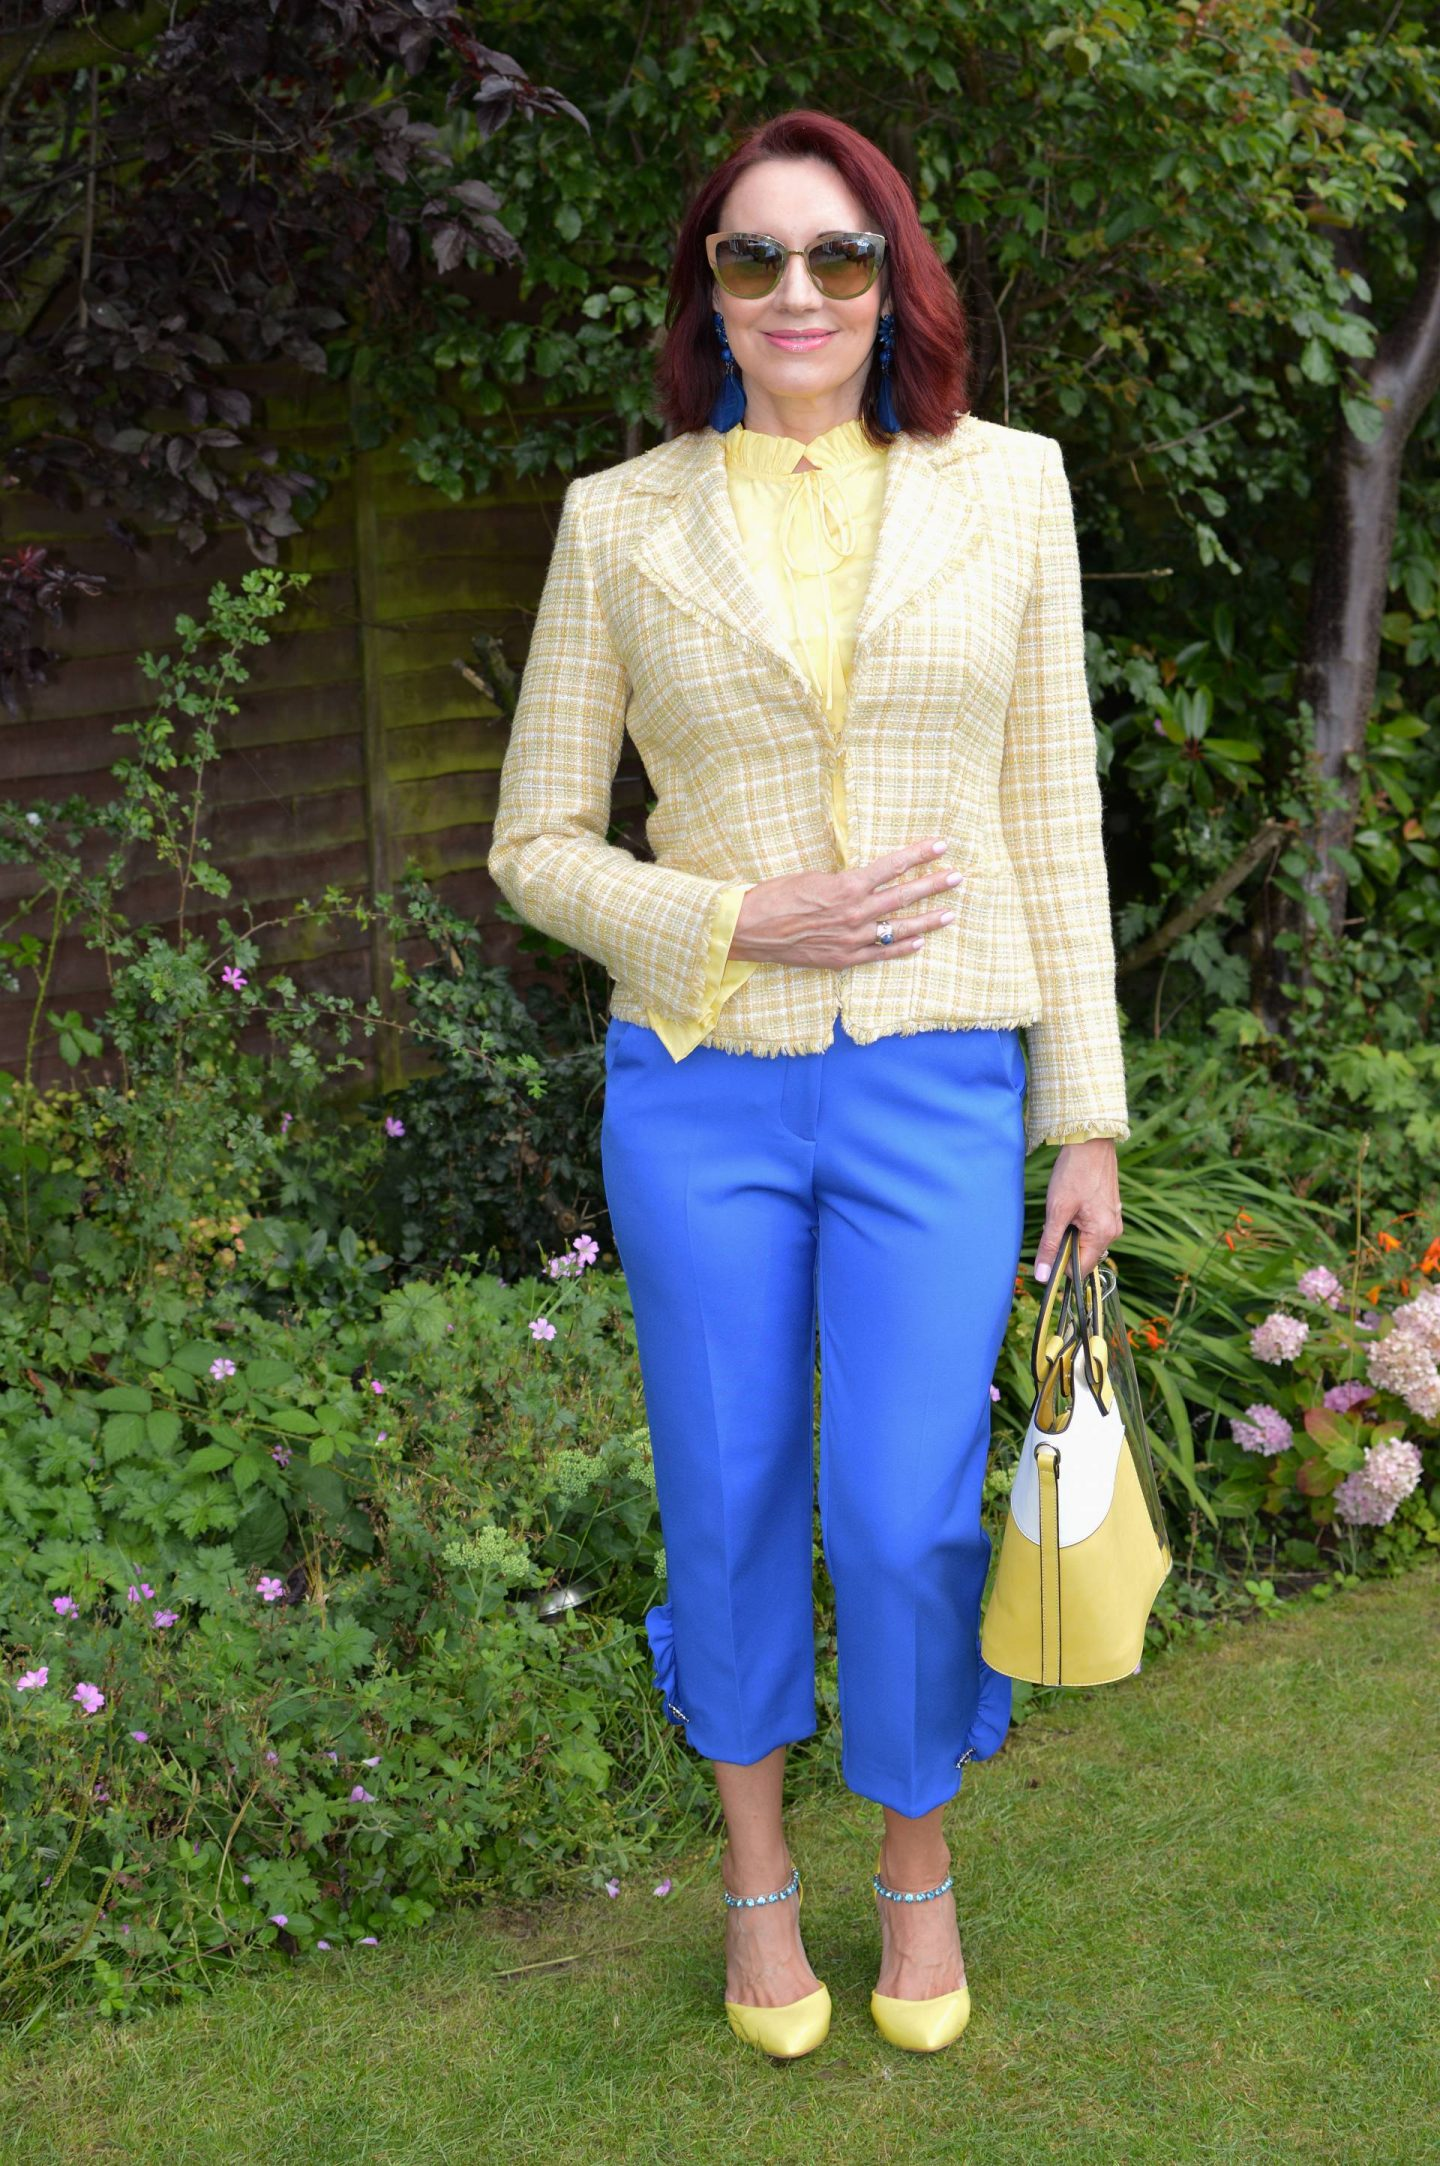 Yellow Tweed Preloved Jacket and Blue Frill Trousers